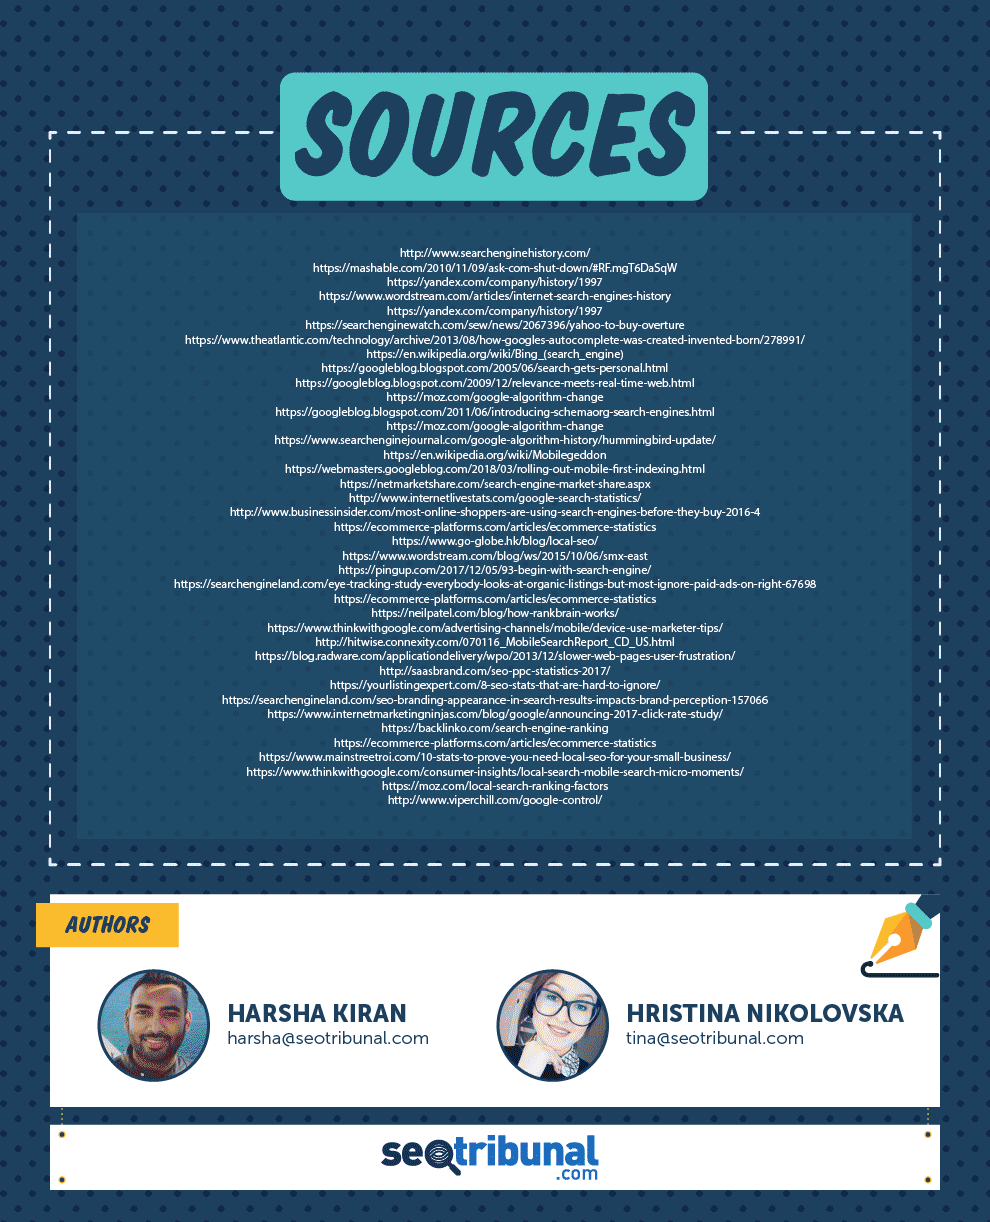 SEO infographic list of sources